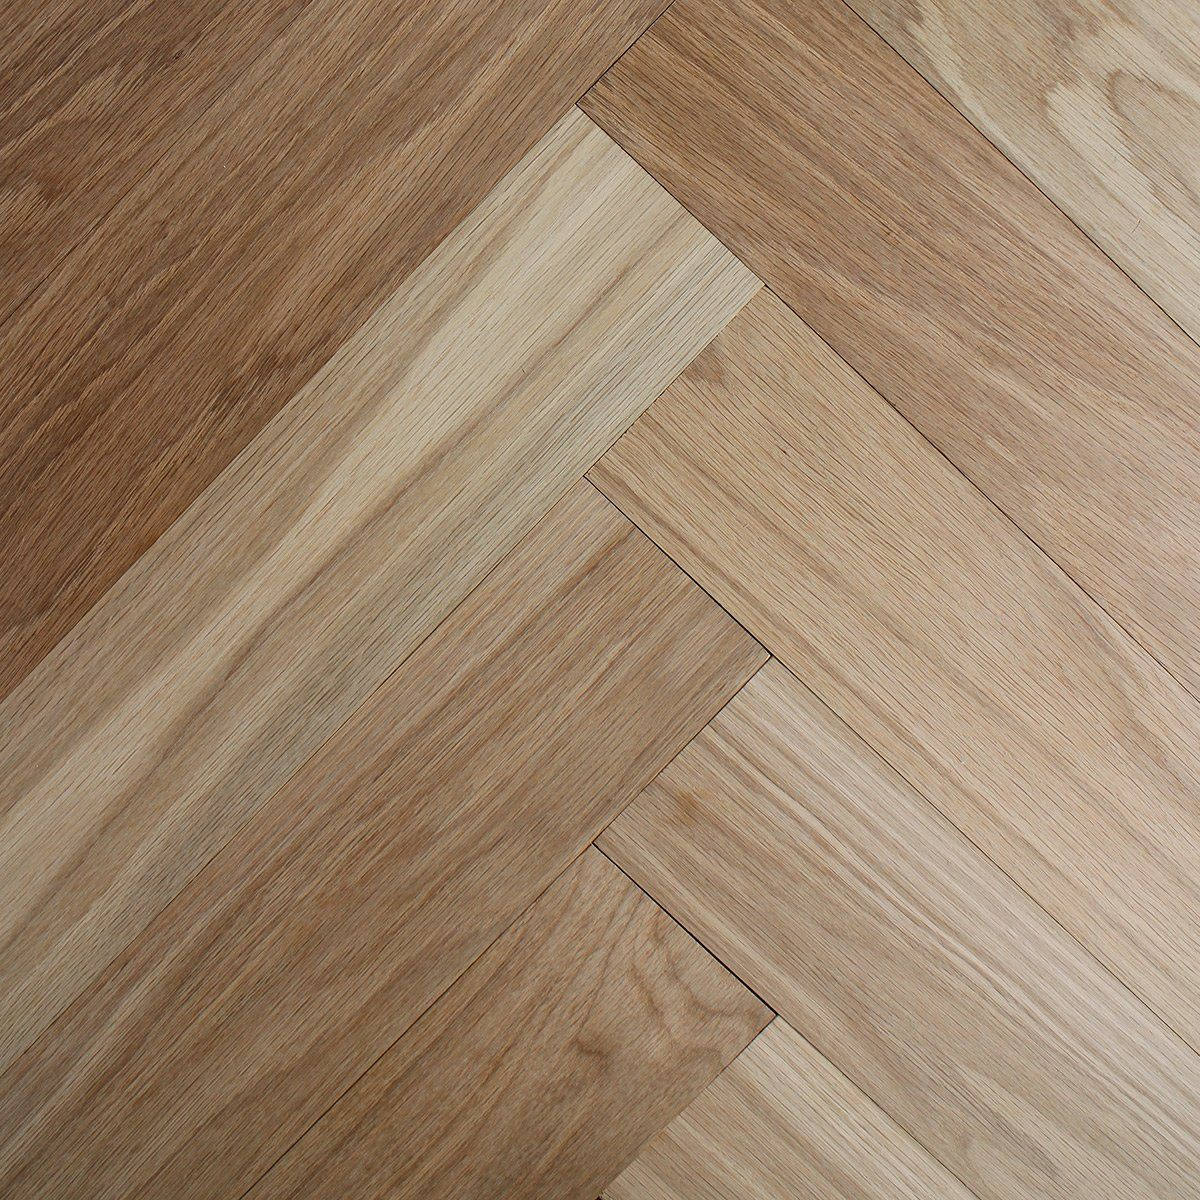 As Part Of The Heritage Timber Edition This Floor Captures The